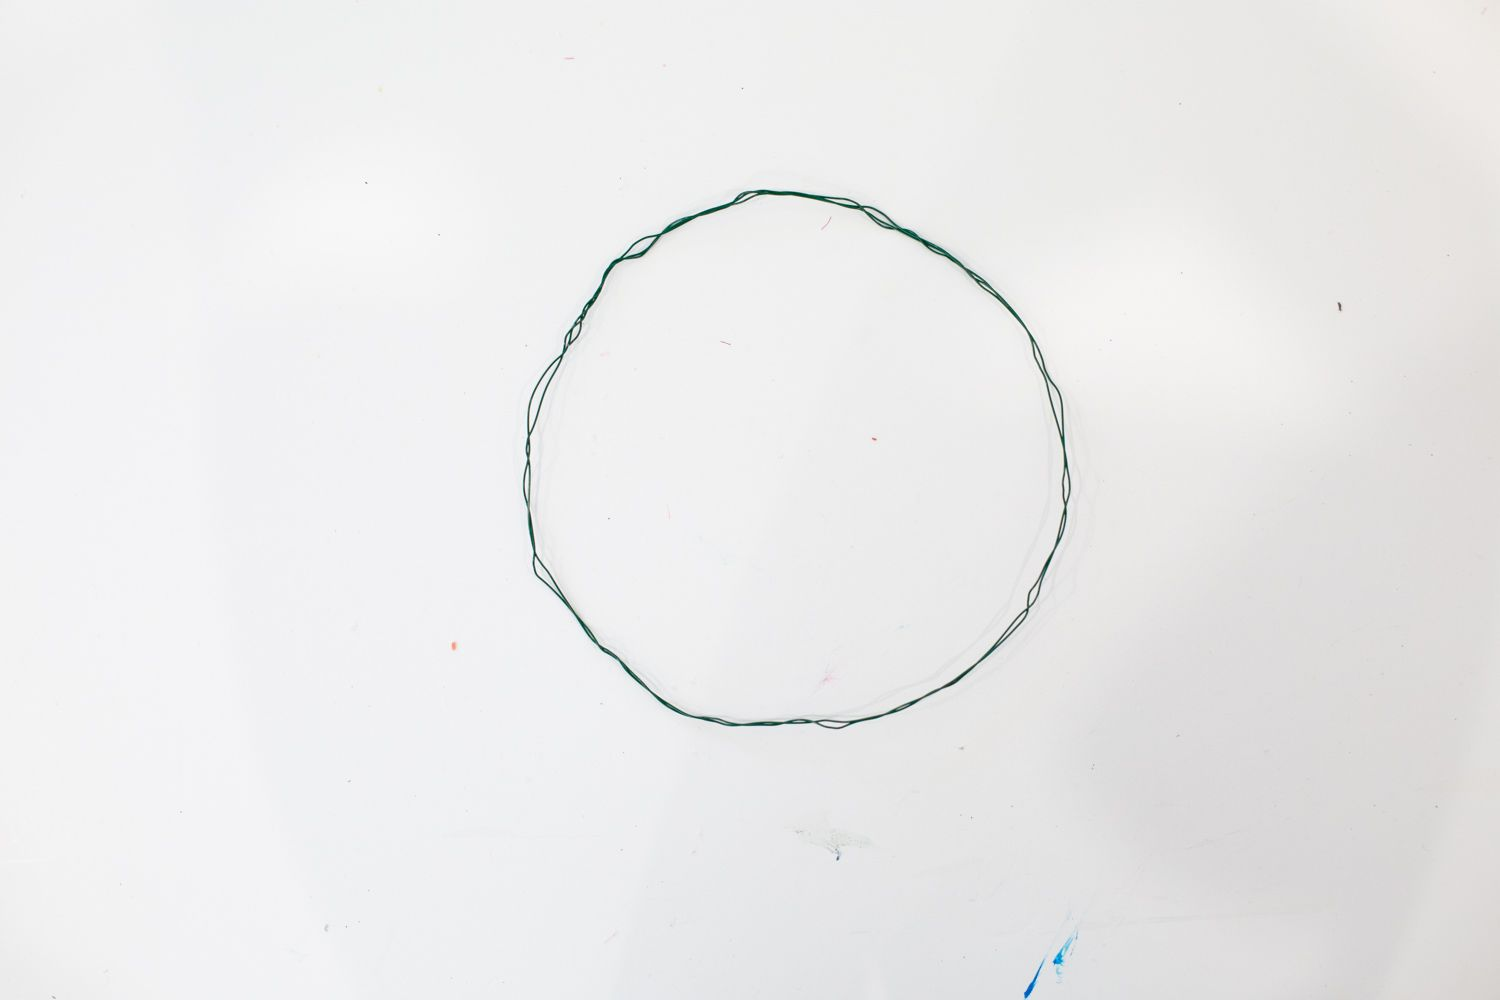 Wire base for DIY faux flower crown